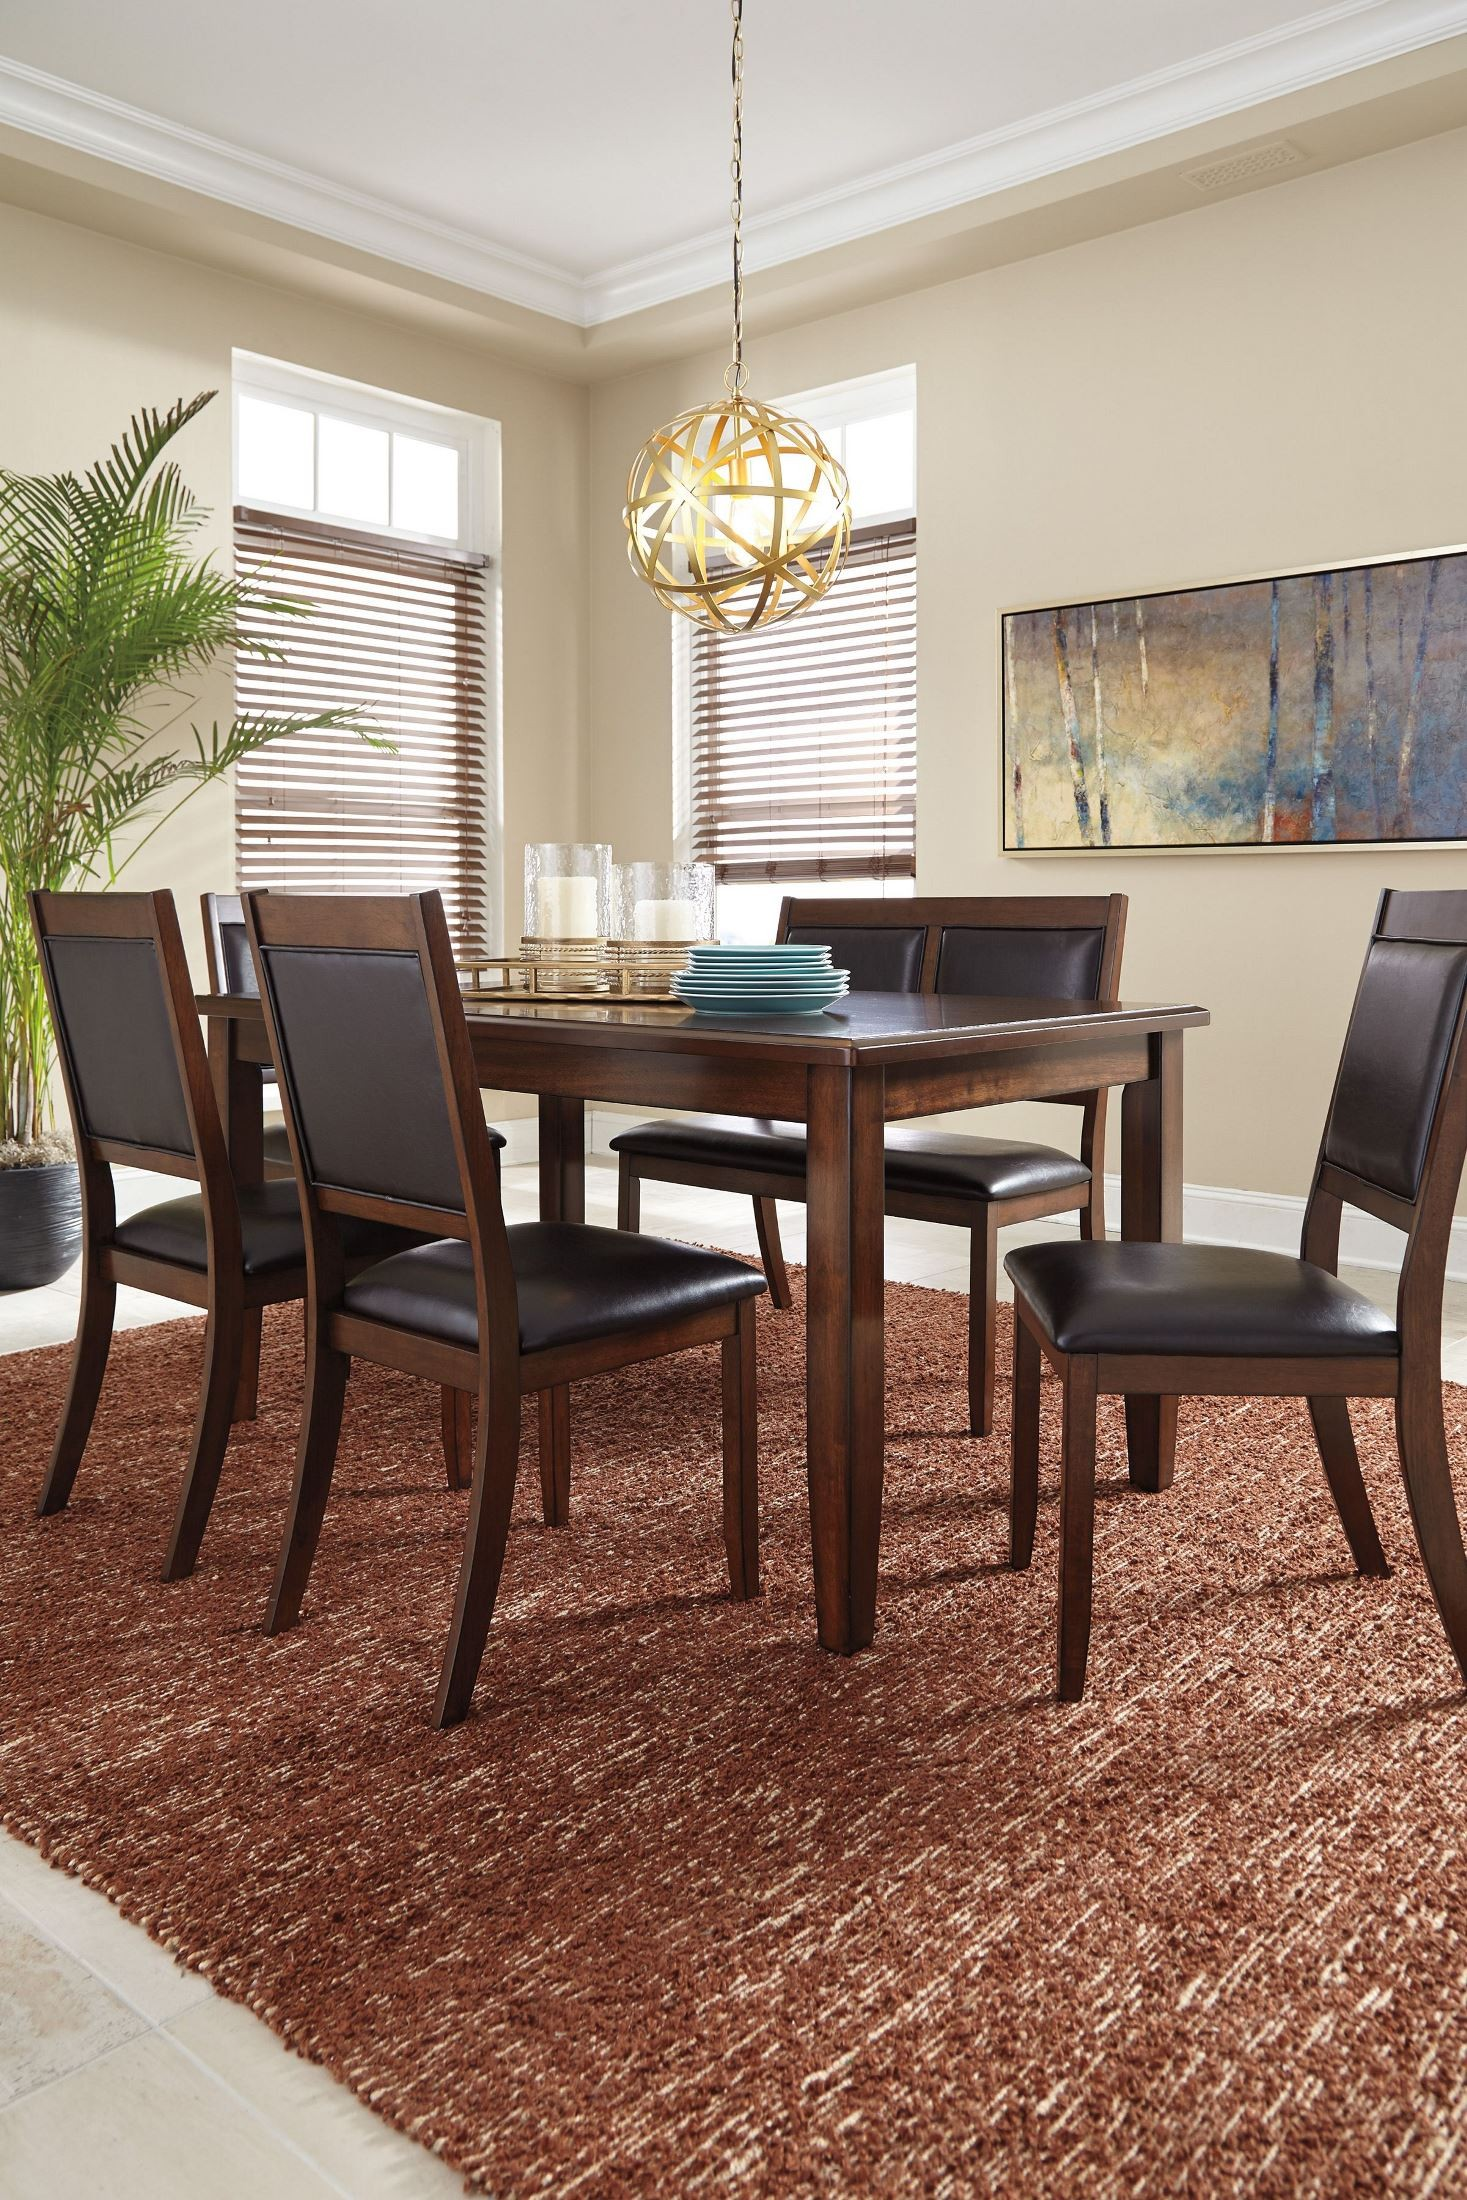 Meredy brown 6 piece dining room set d395 325 ashley for Dining room sets 6 piece